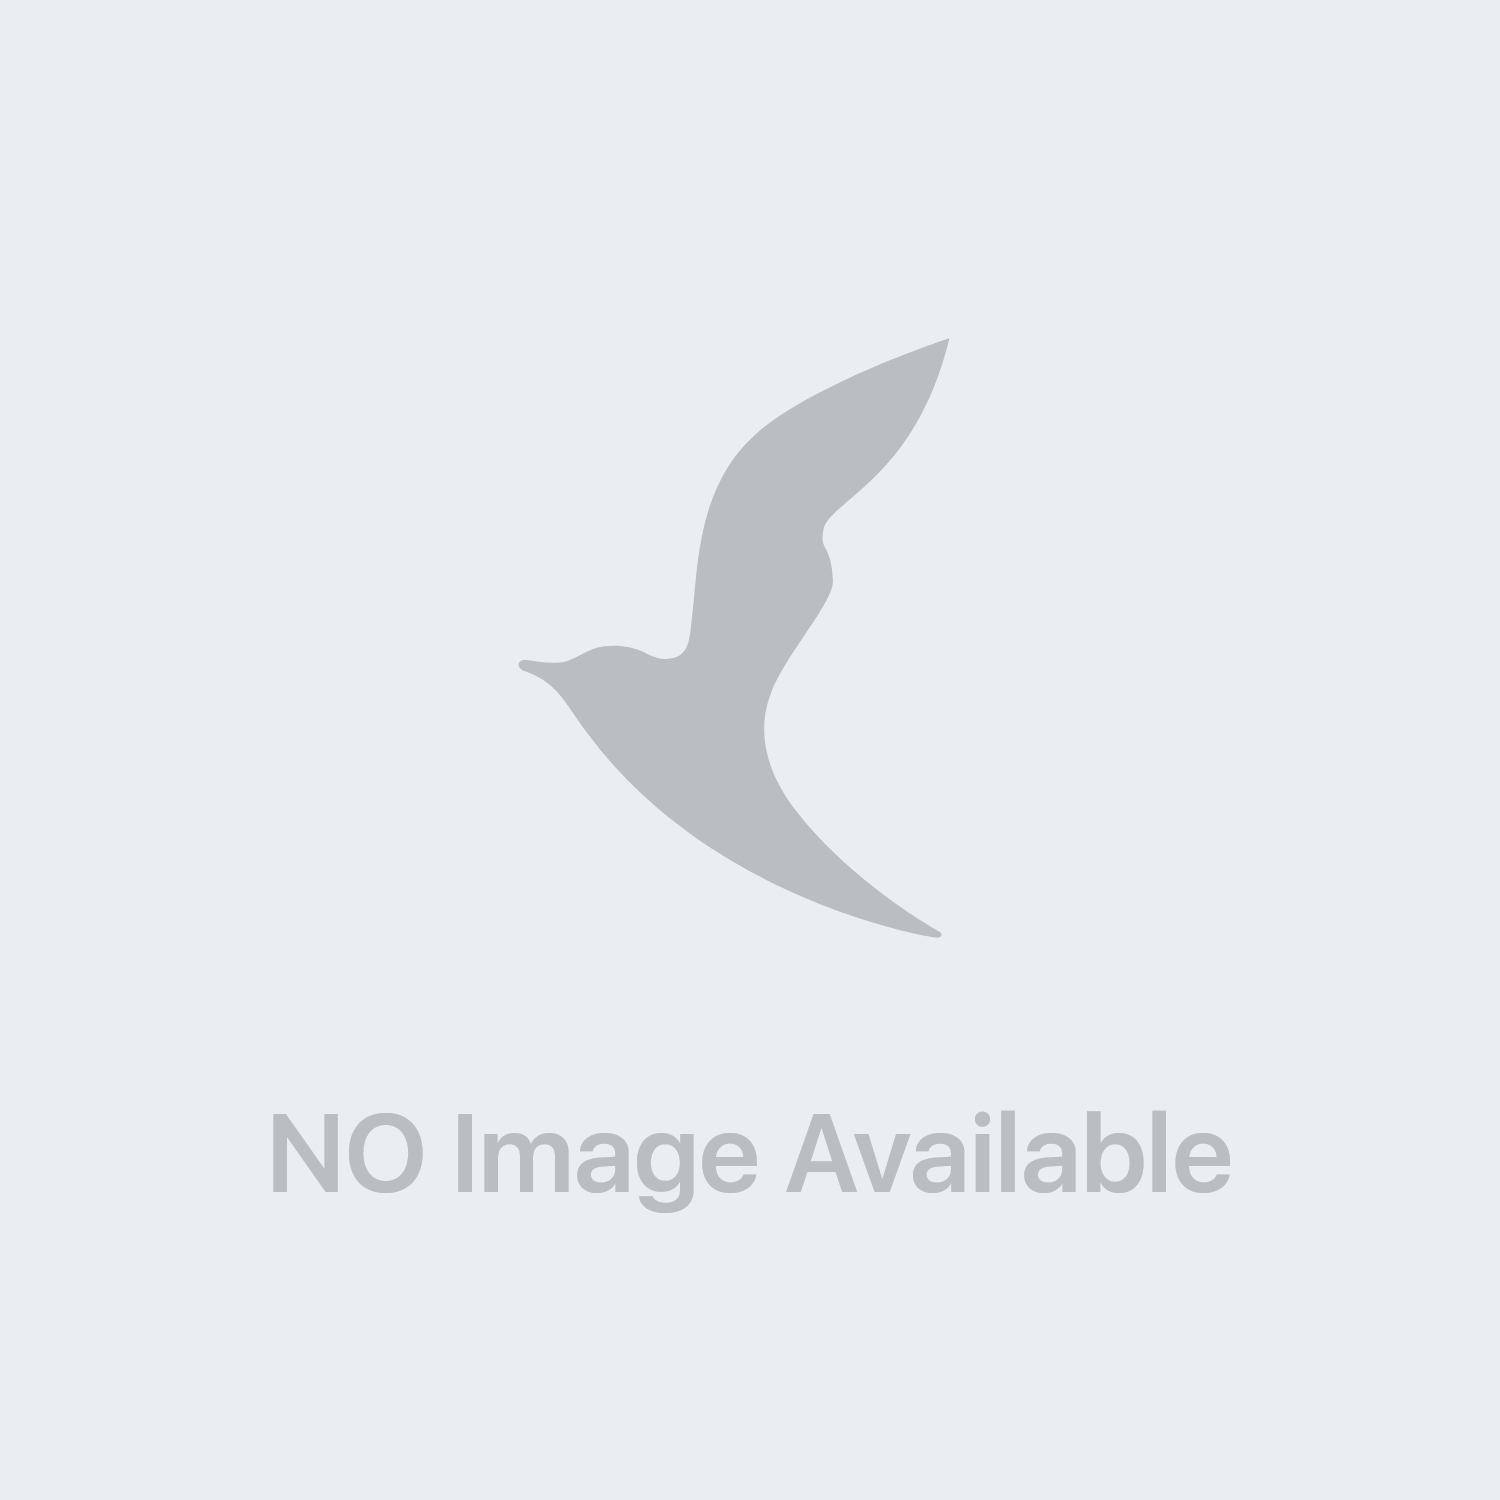 Momentact 12 Compresse Rivestite 400 mg